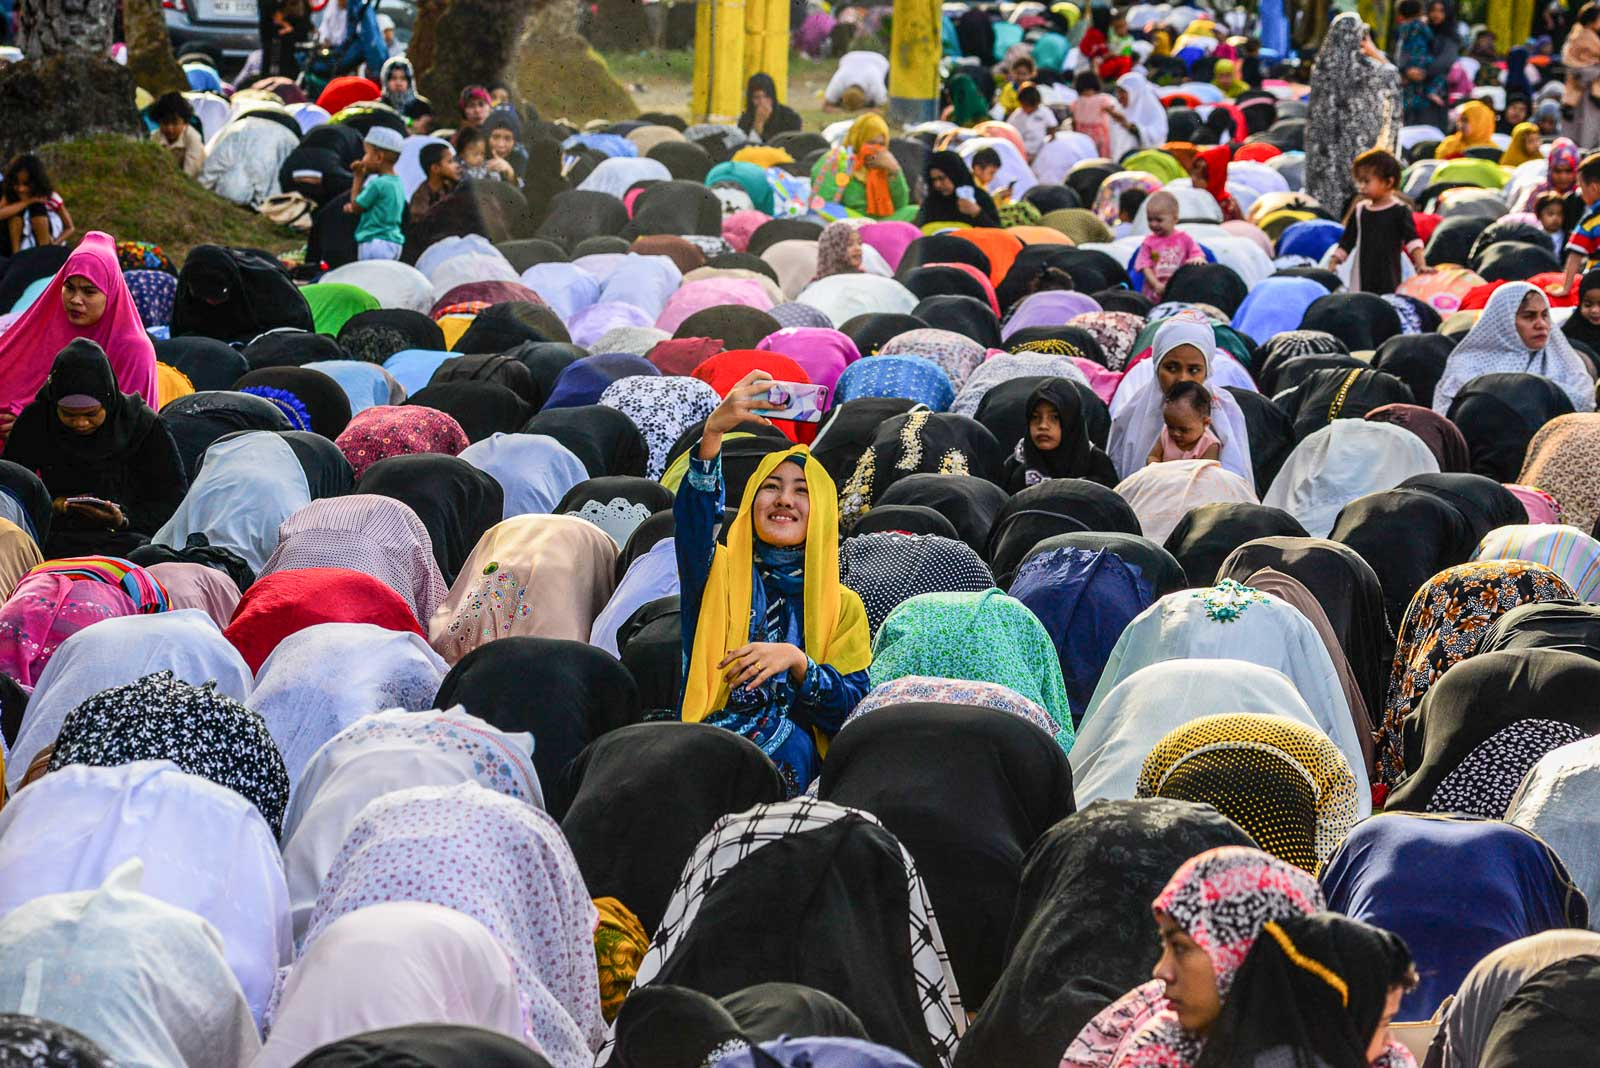 OBLIGATORY. A Muslim women takes a selfie before praying during the Eid'l Fitr celebration at the Blue Mosque in Taguig City. Photo by Maria Tan/Rappler